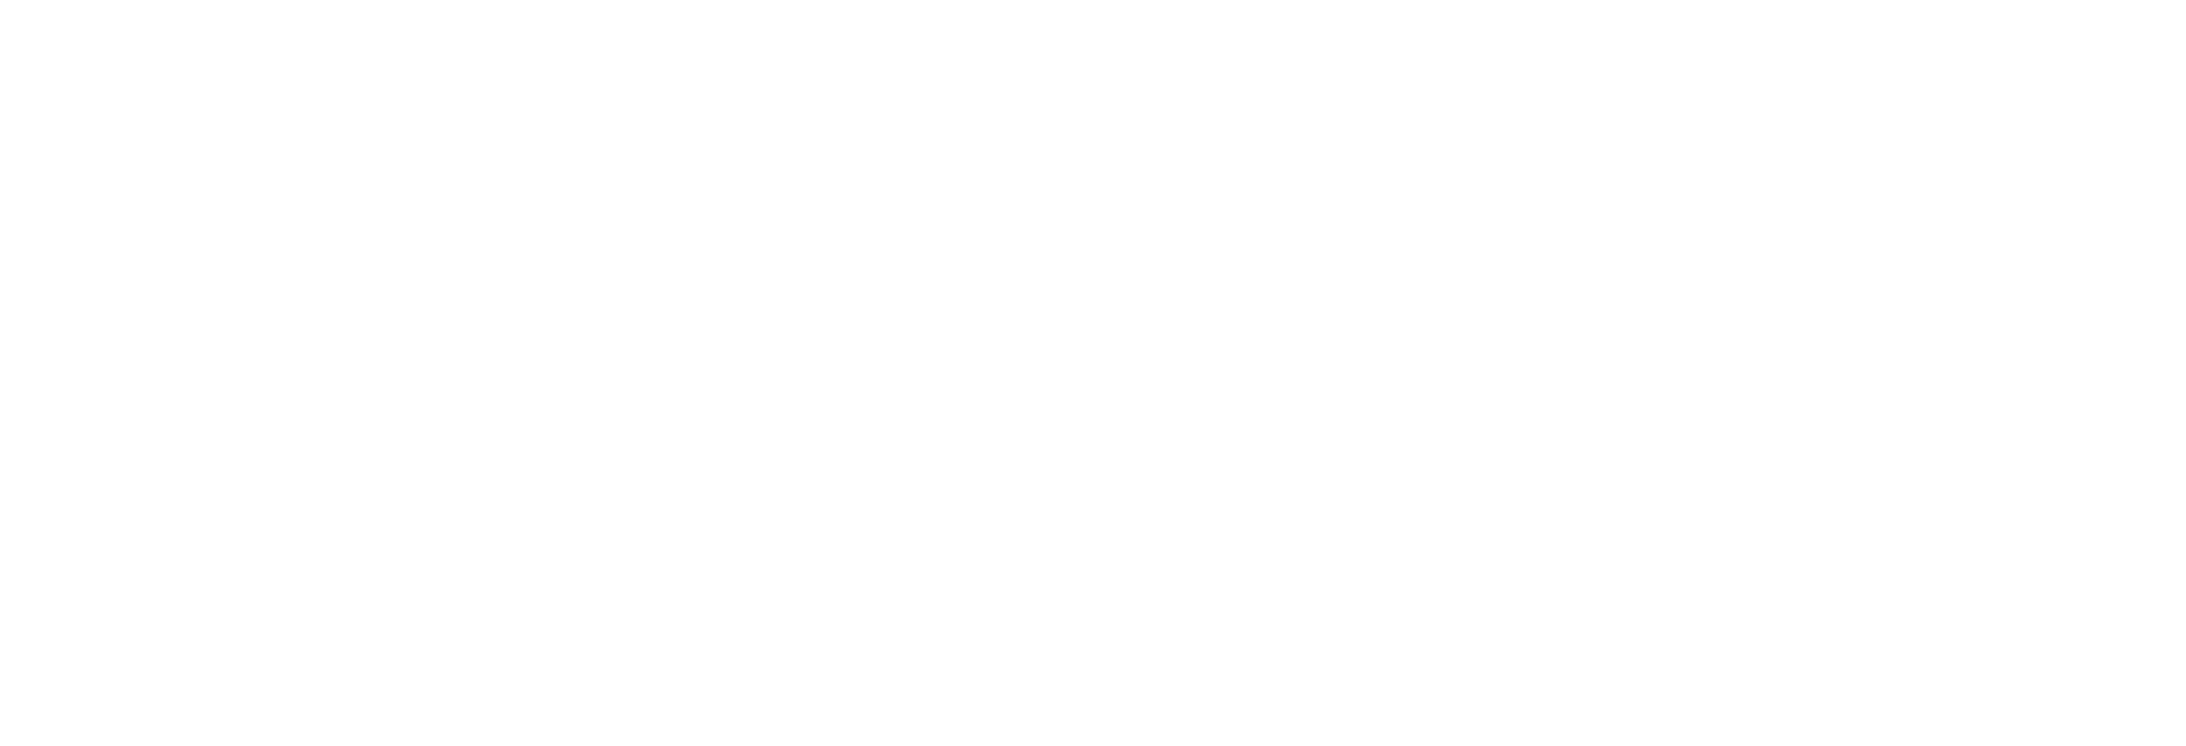 International Schools Partnership